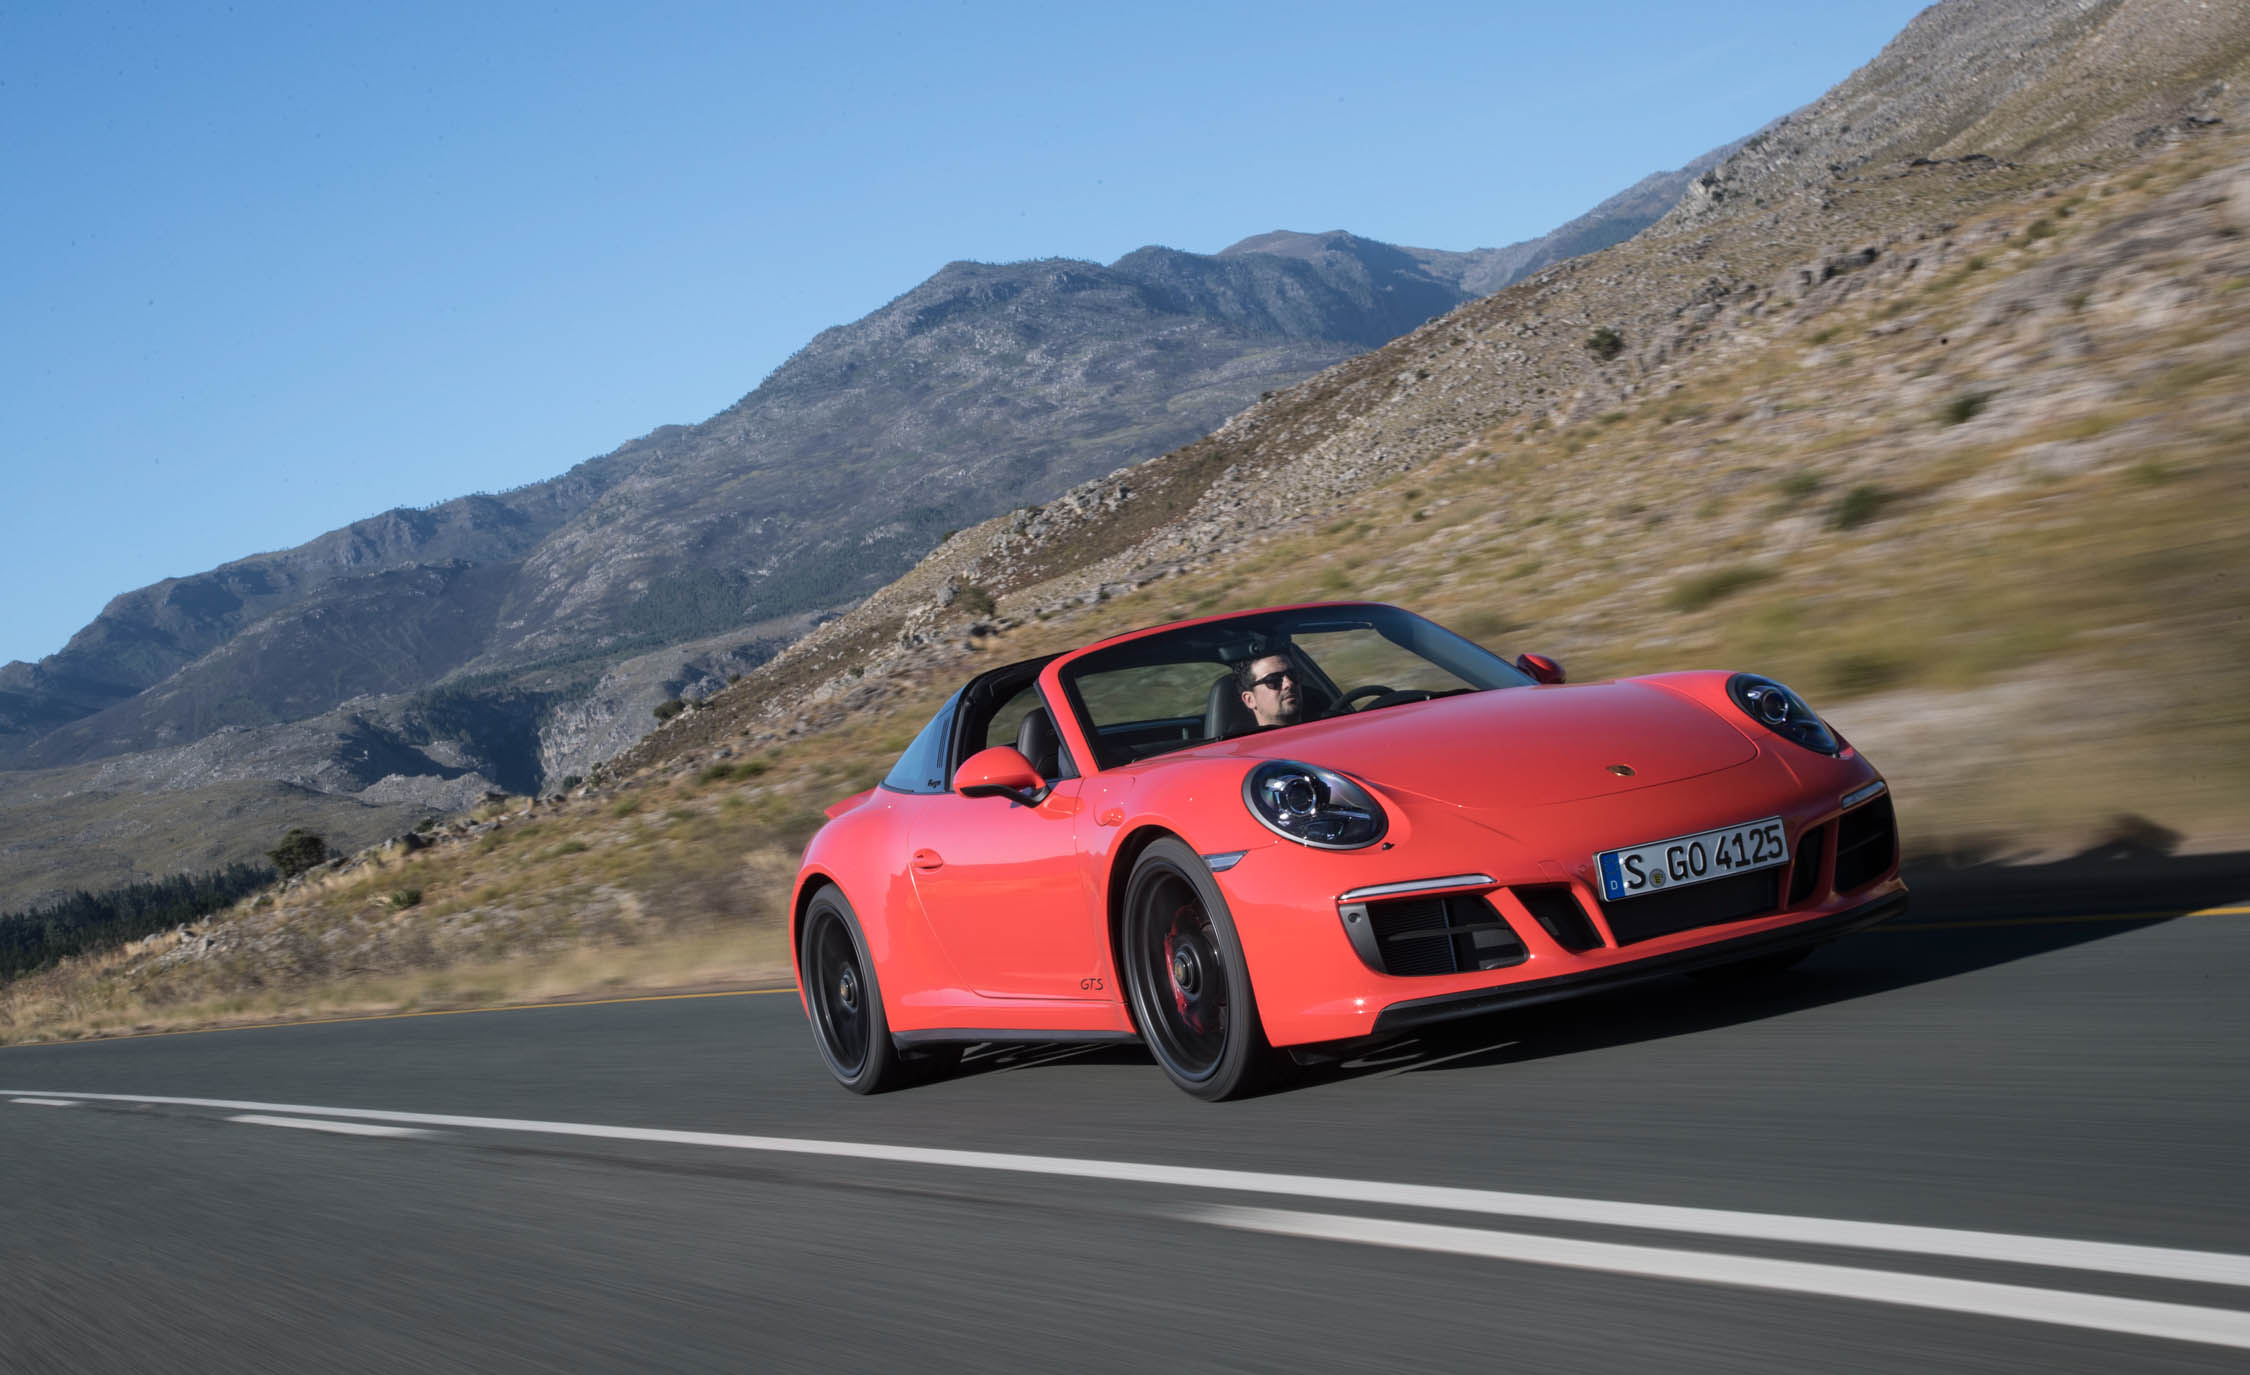 2017 Porsche 911 Targa 4 GTS Test Drive (Photo 91 of 97)